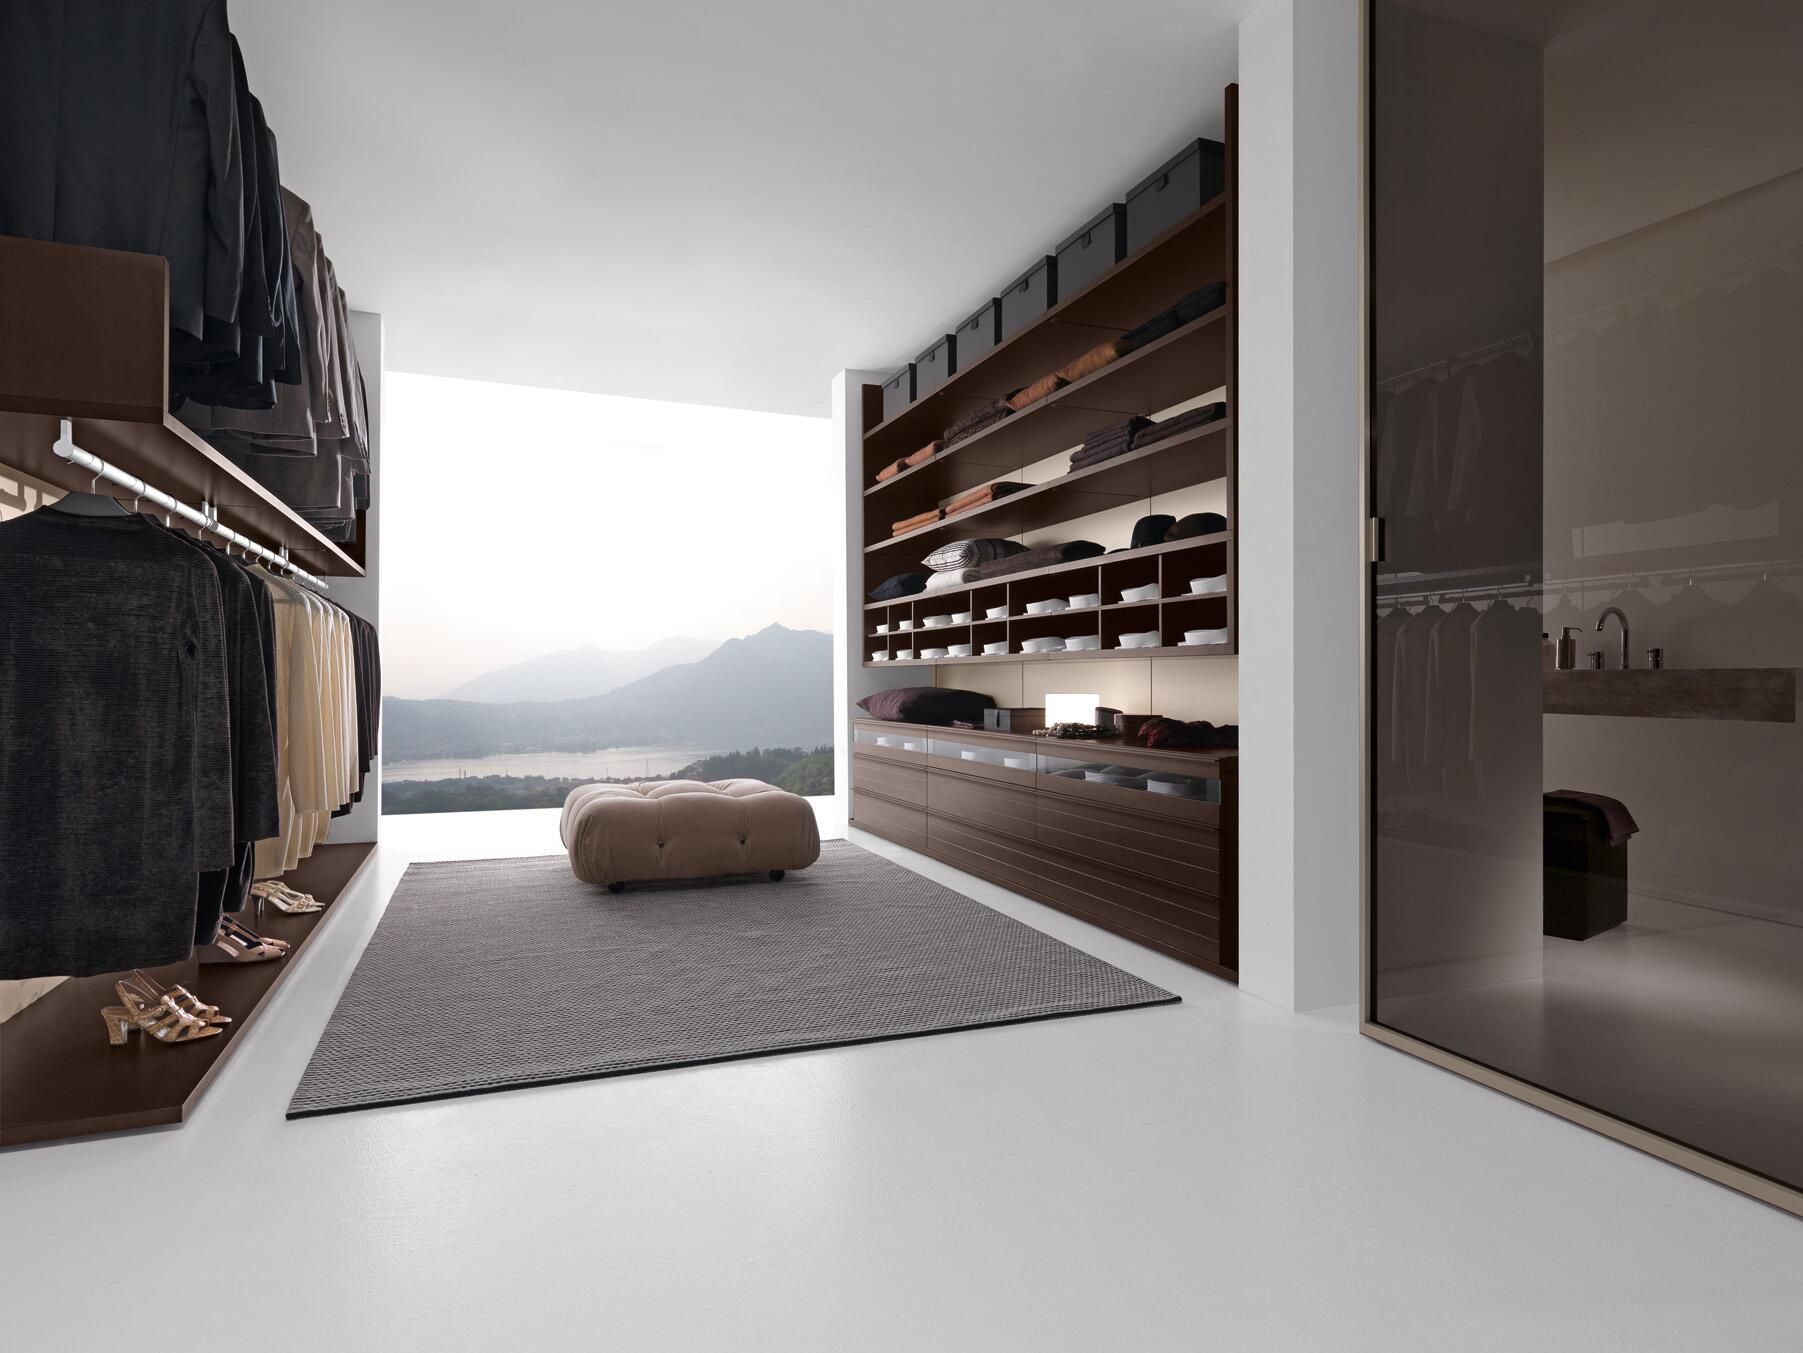 Don't you like to change your winter #wardrobe to spring and summer? Choose a bigger wardrobe! #design #presotto http://t.co/lTNWgikS7z